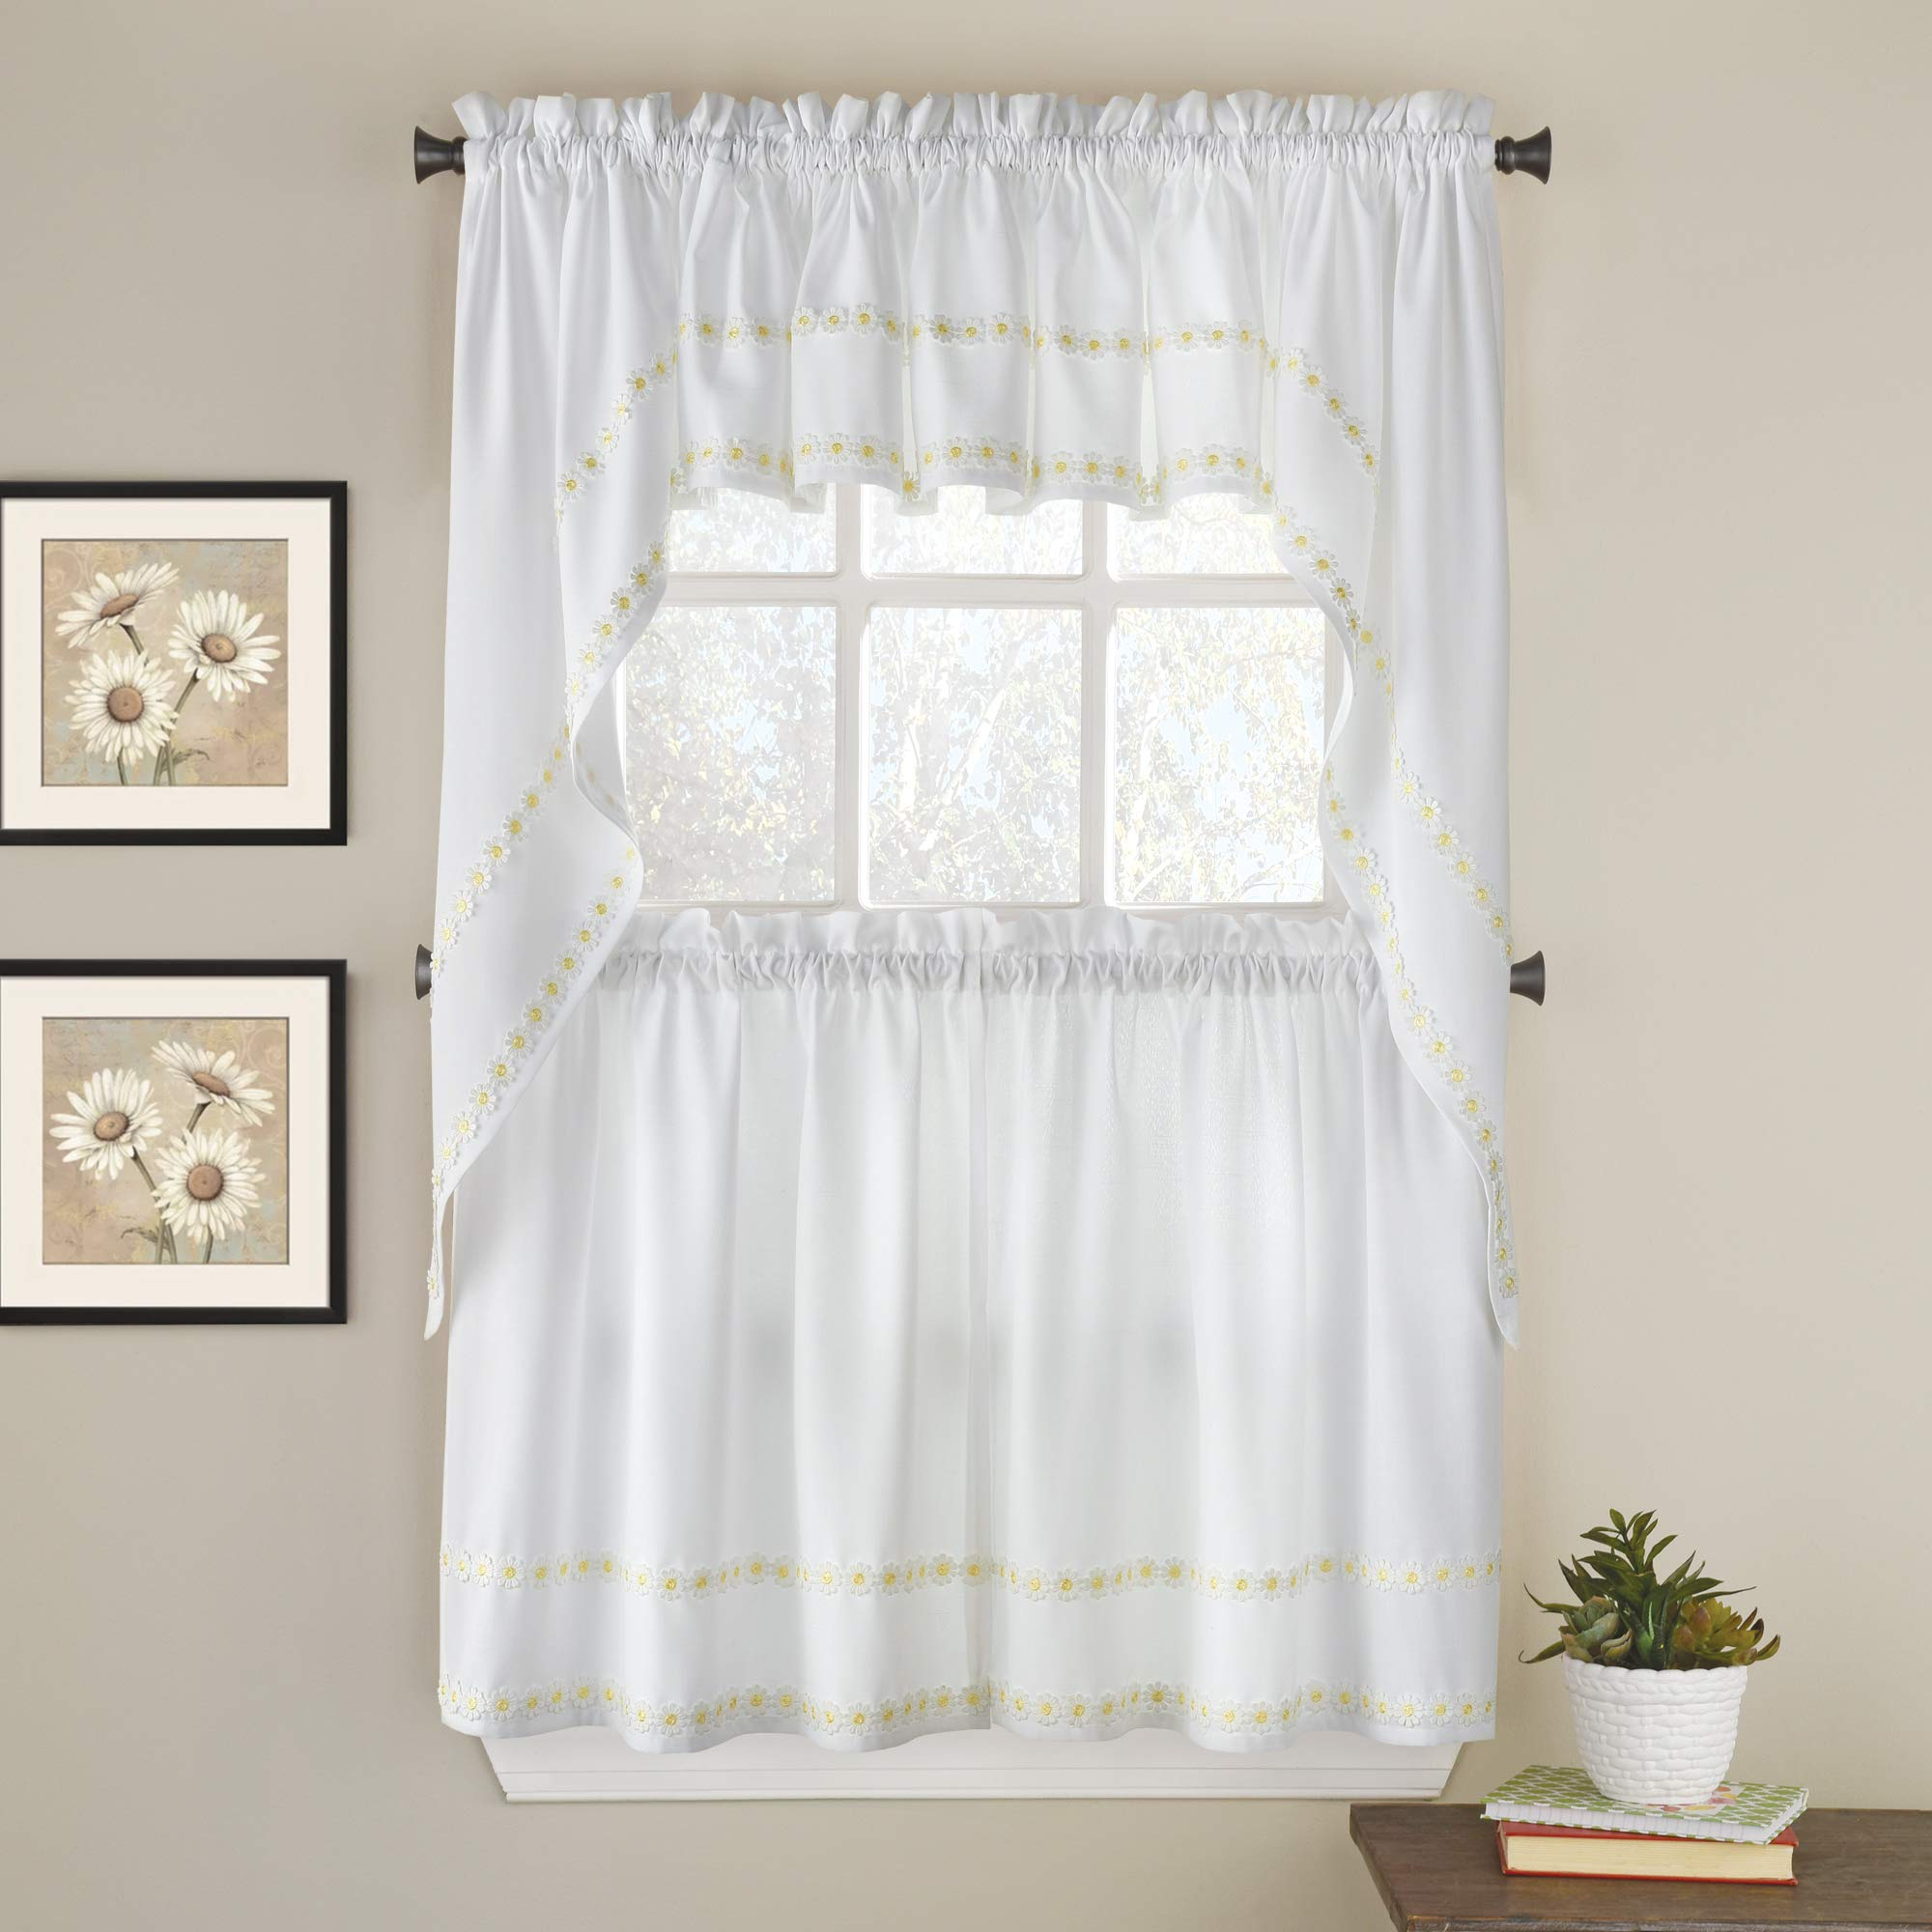 Sweet Home Collection Kitchen Window Curtain 5 Piece Set with Valance, Swag, and Choice of 24'' or 36'' Tier Pair Daisy Mae Yellow by Sweet Home Collection